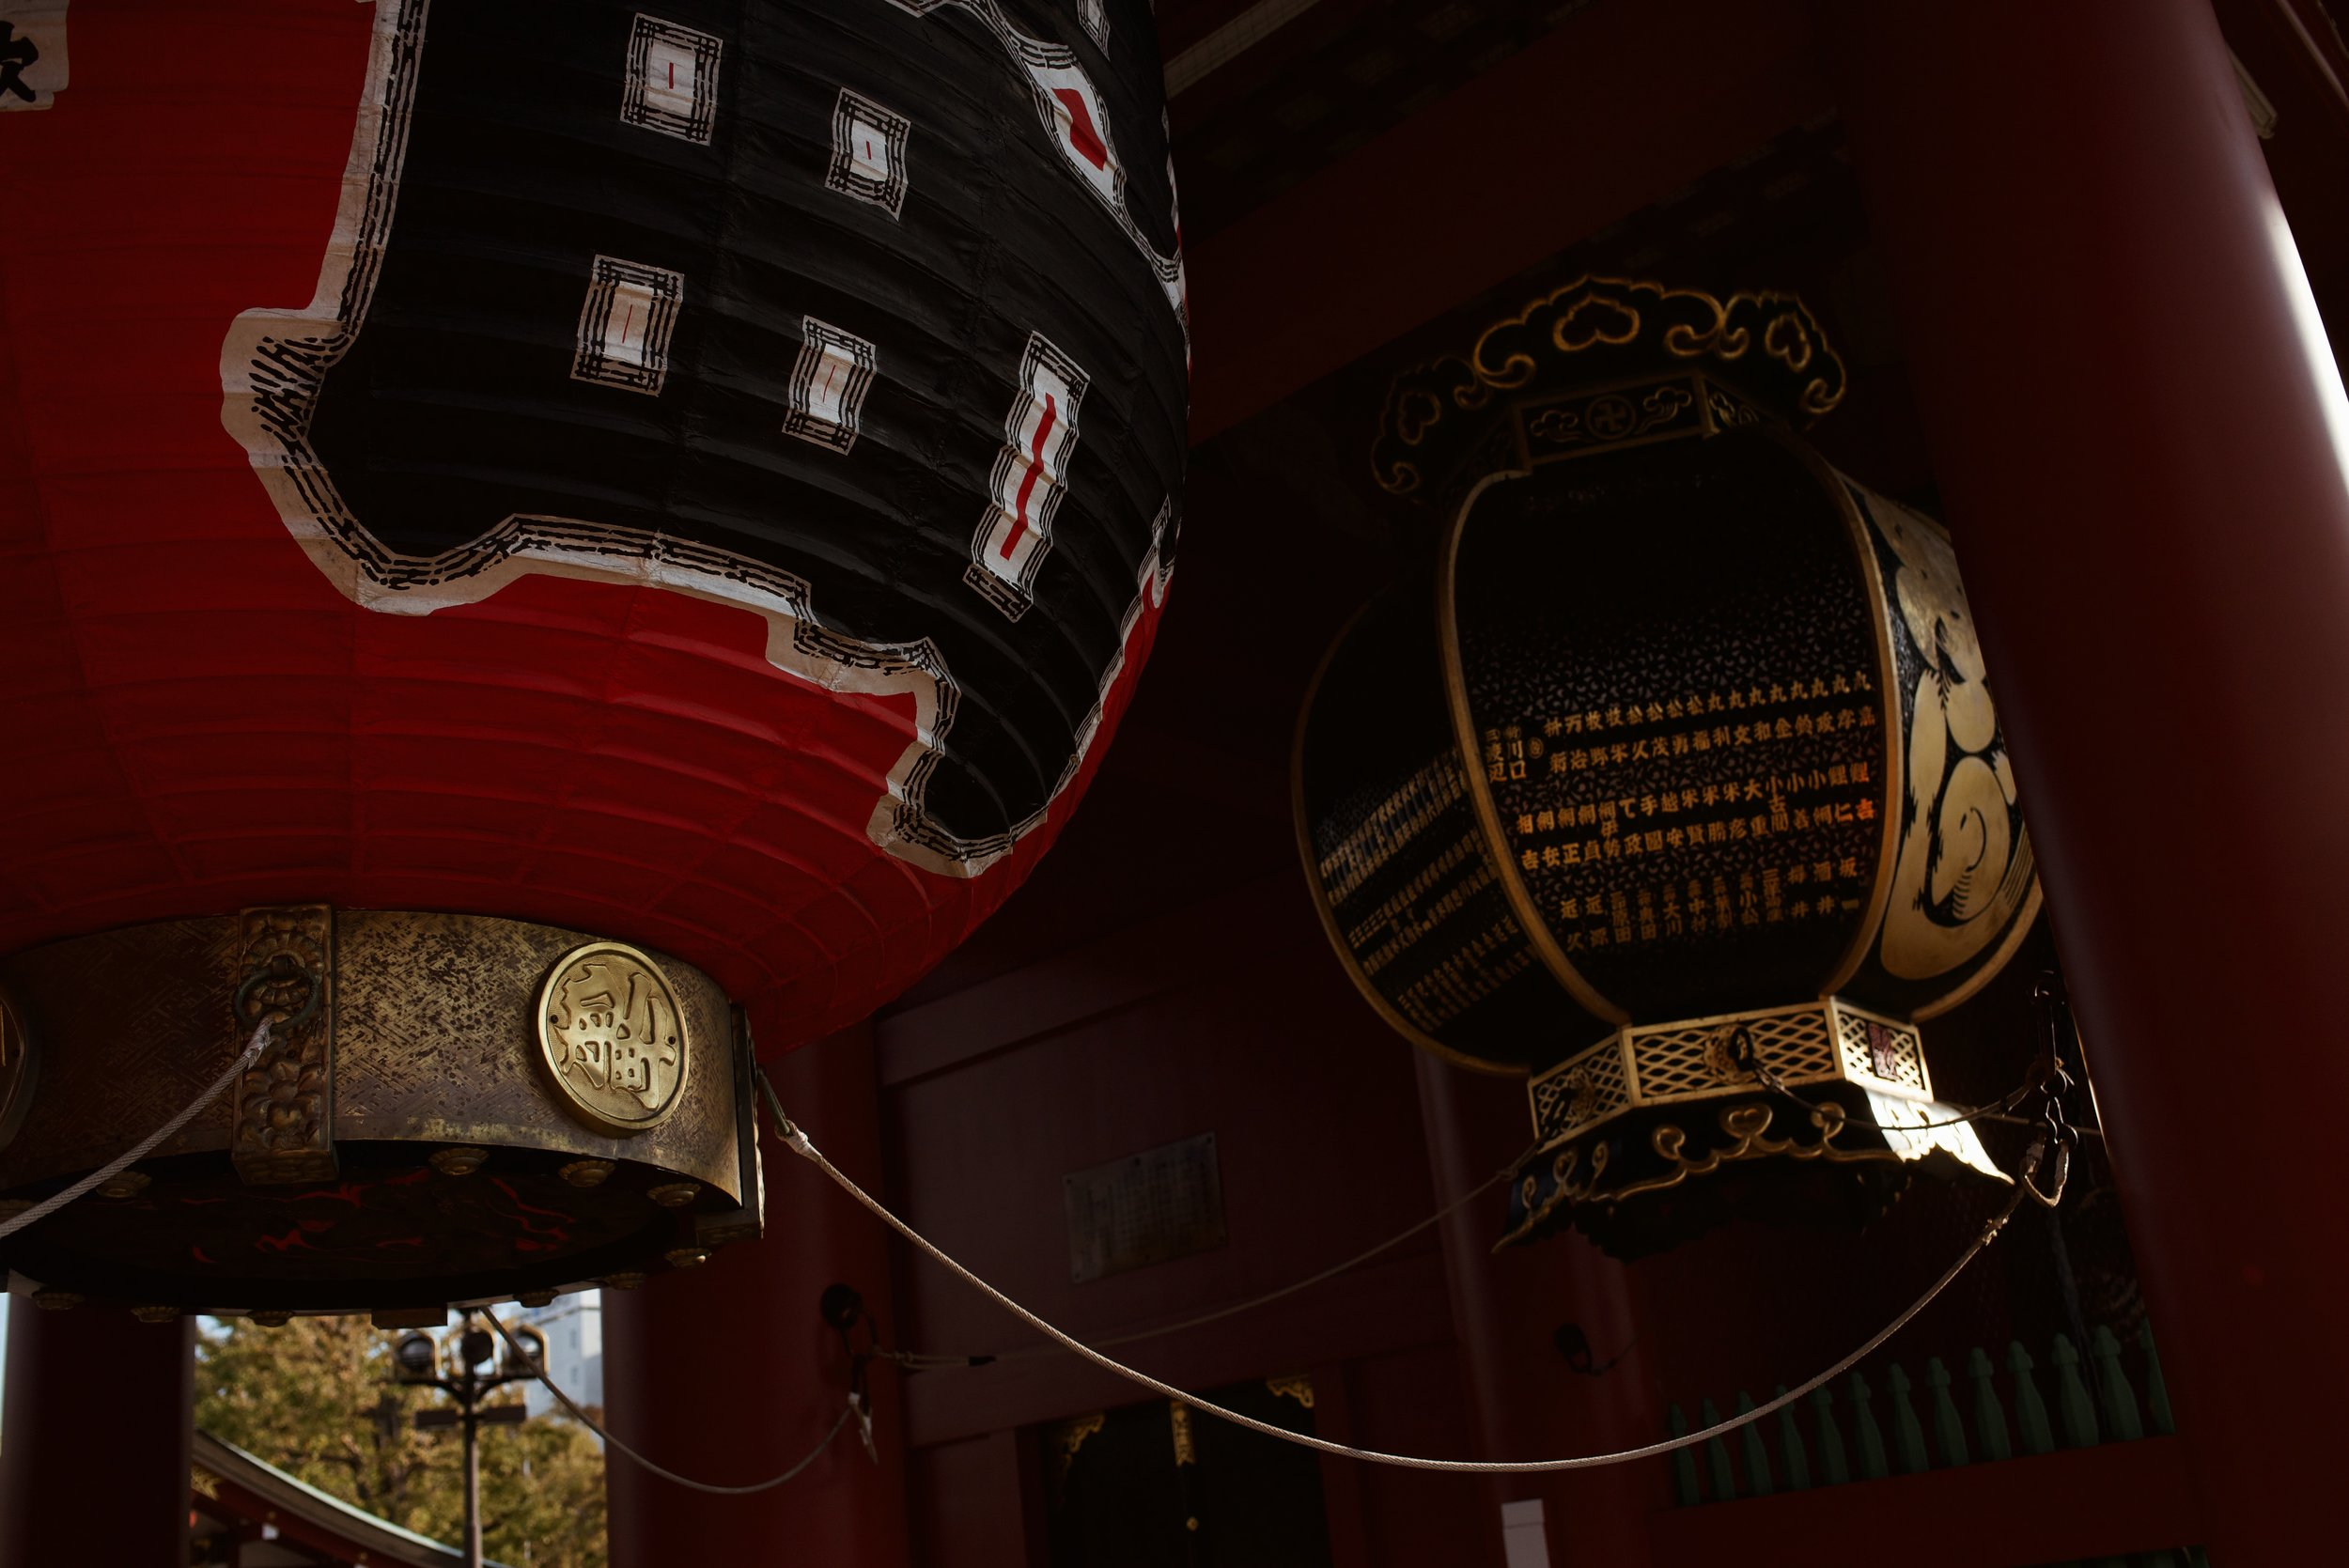 The-Look-Principle-Japanese-Shrines-And-Temples-3.jpg